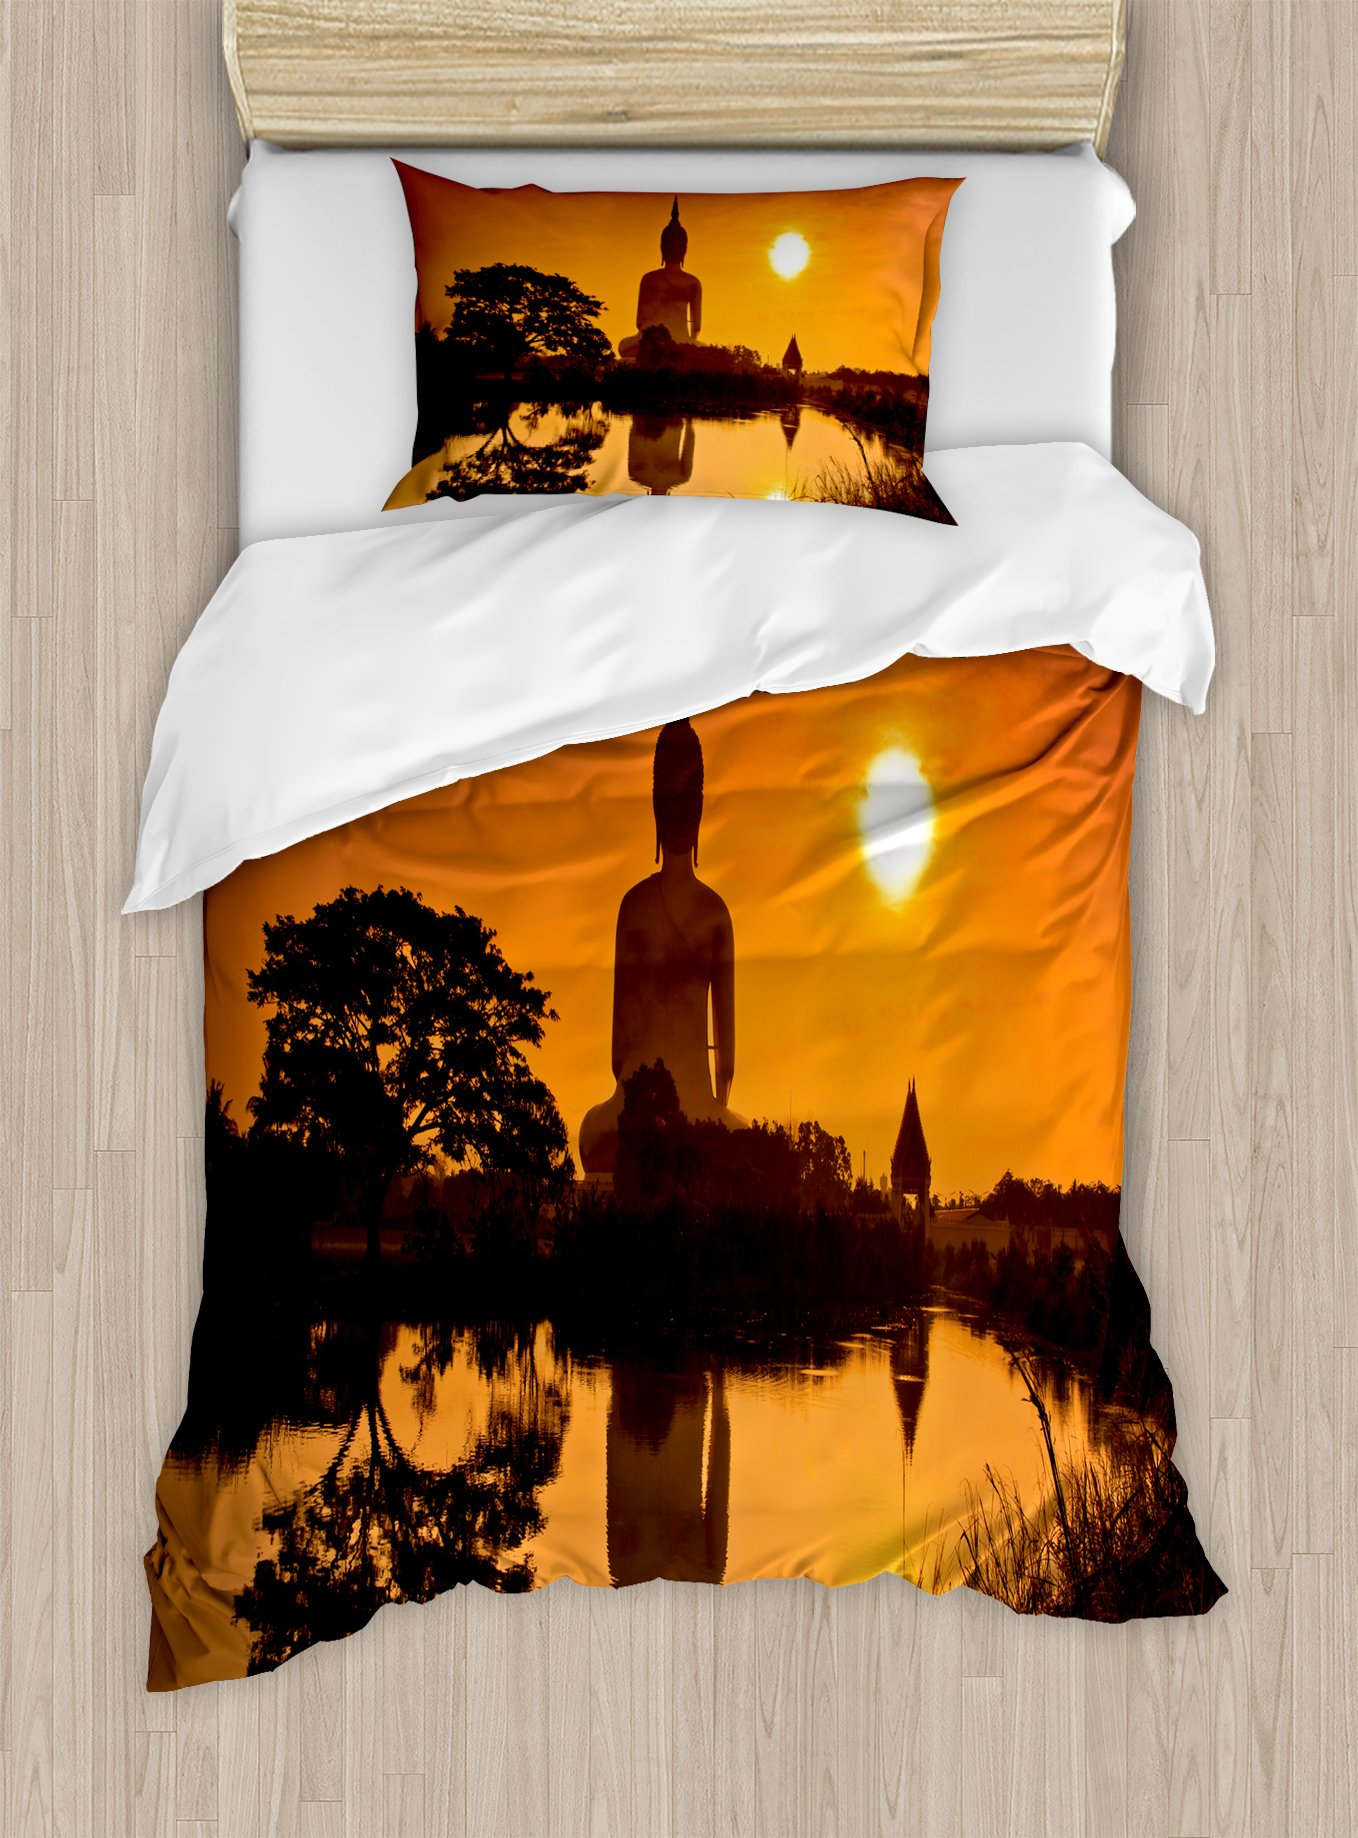 Ambesonne Asian Duvet Cover Set Twin Size, Big Giant Statue by The River at Sunset Thai Asian Culture Scene Yin Yang Print, Decorative 2 Piece Bedding Set with 1 Pillow Sham, Burnt Orange by Ambesonne